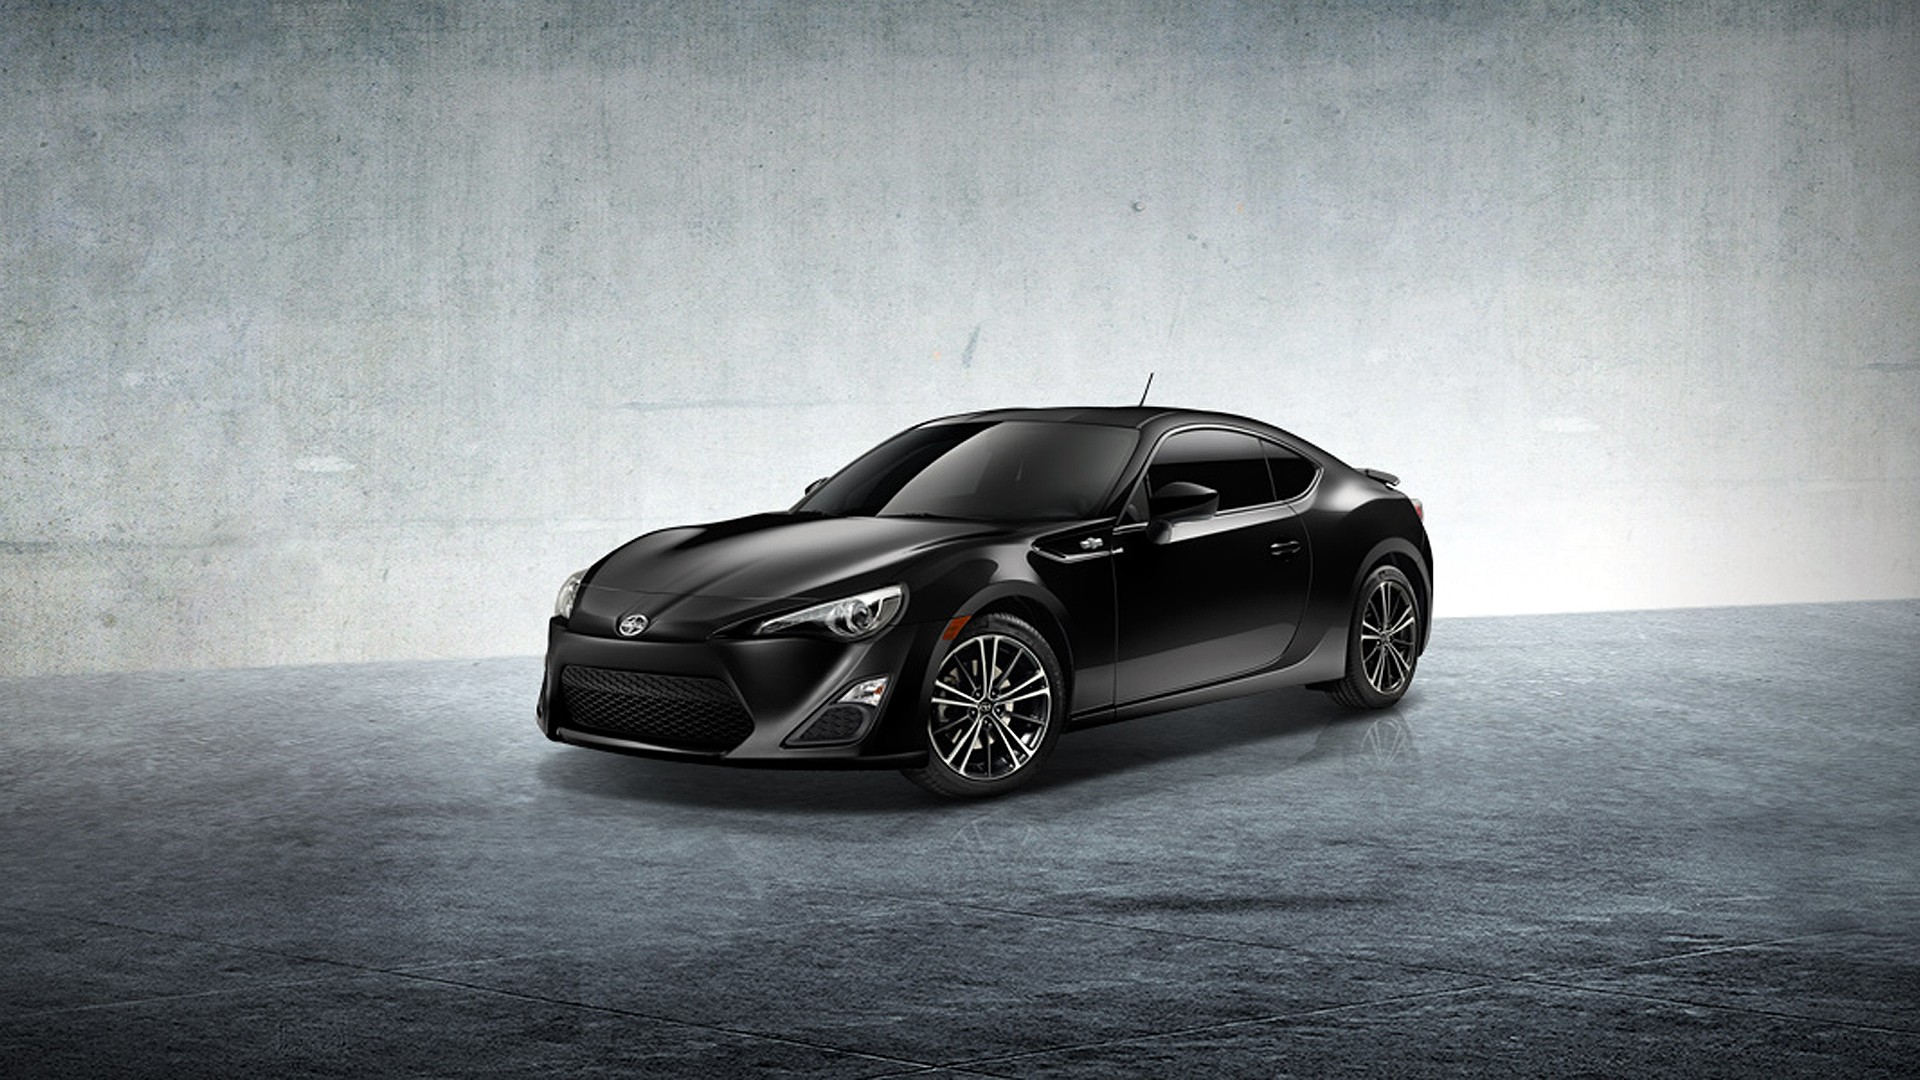 Scion Fr-s 2014 Black